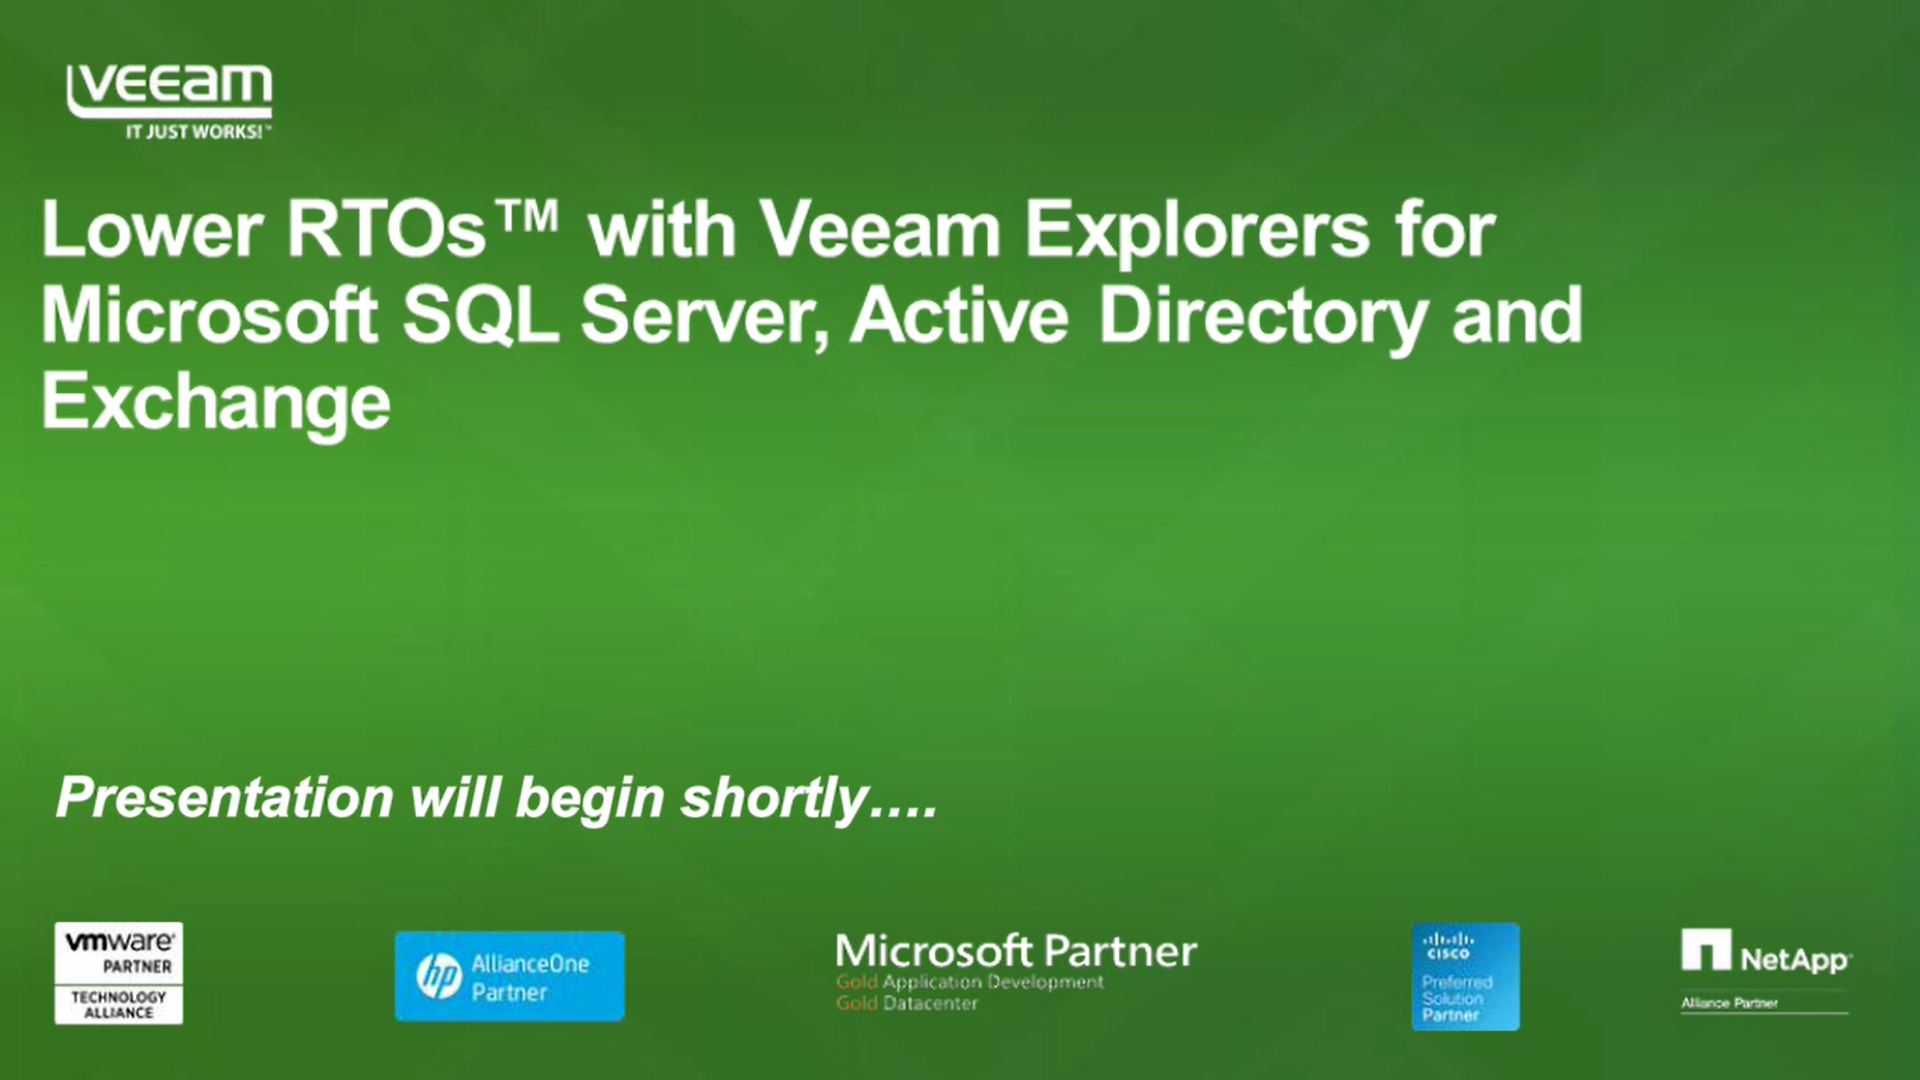 Veeam Explorers for Microsoft SQL Server, Active Directory and Exchange